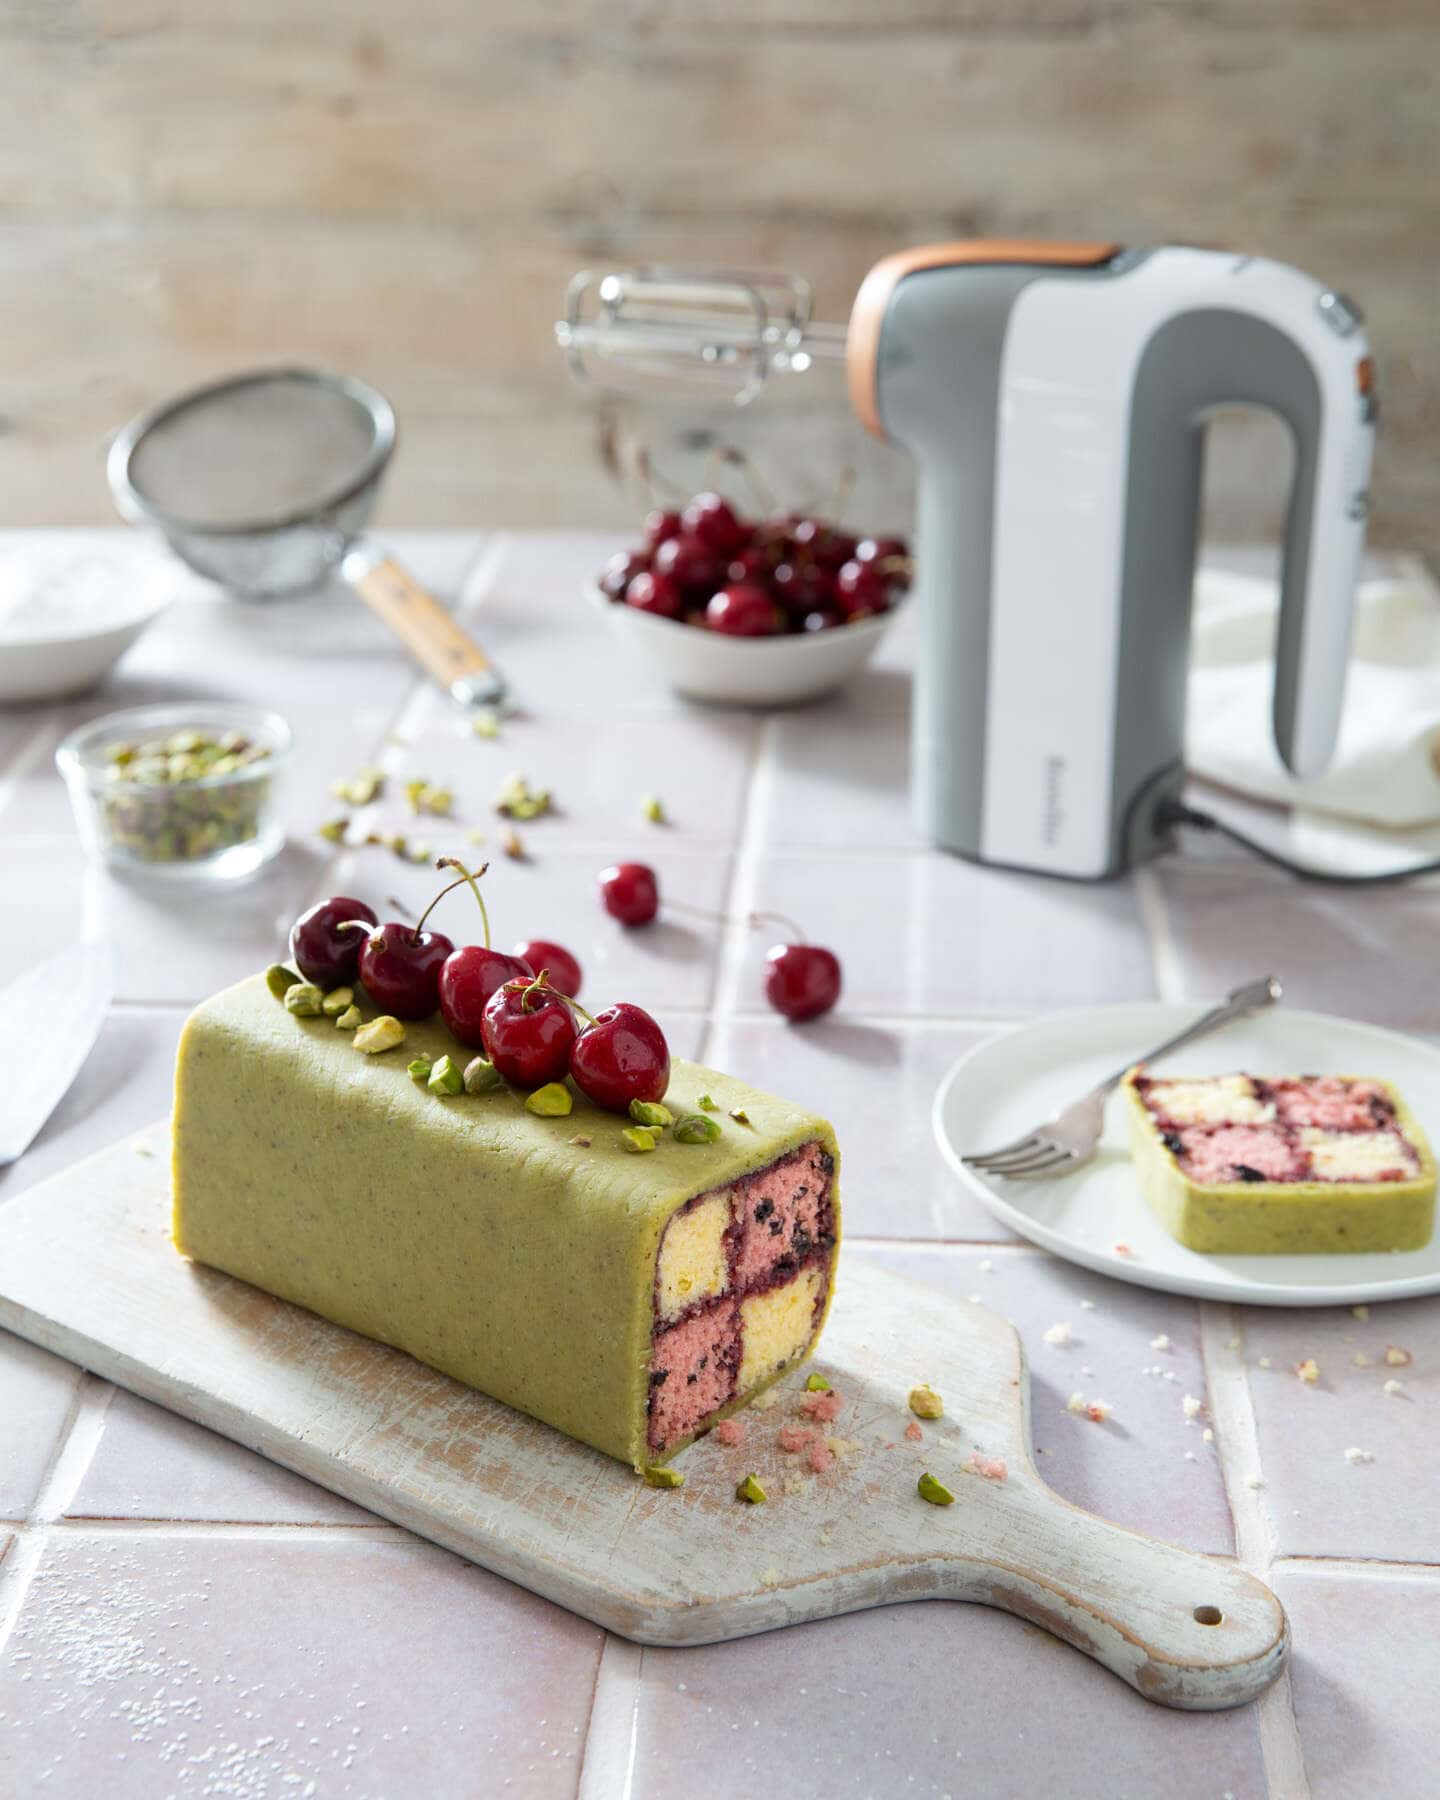 Battenberg cherry cake with pistachio marzipan with the Breville heat soft mixer with baking utensils , cherries and nuts.